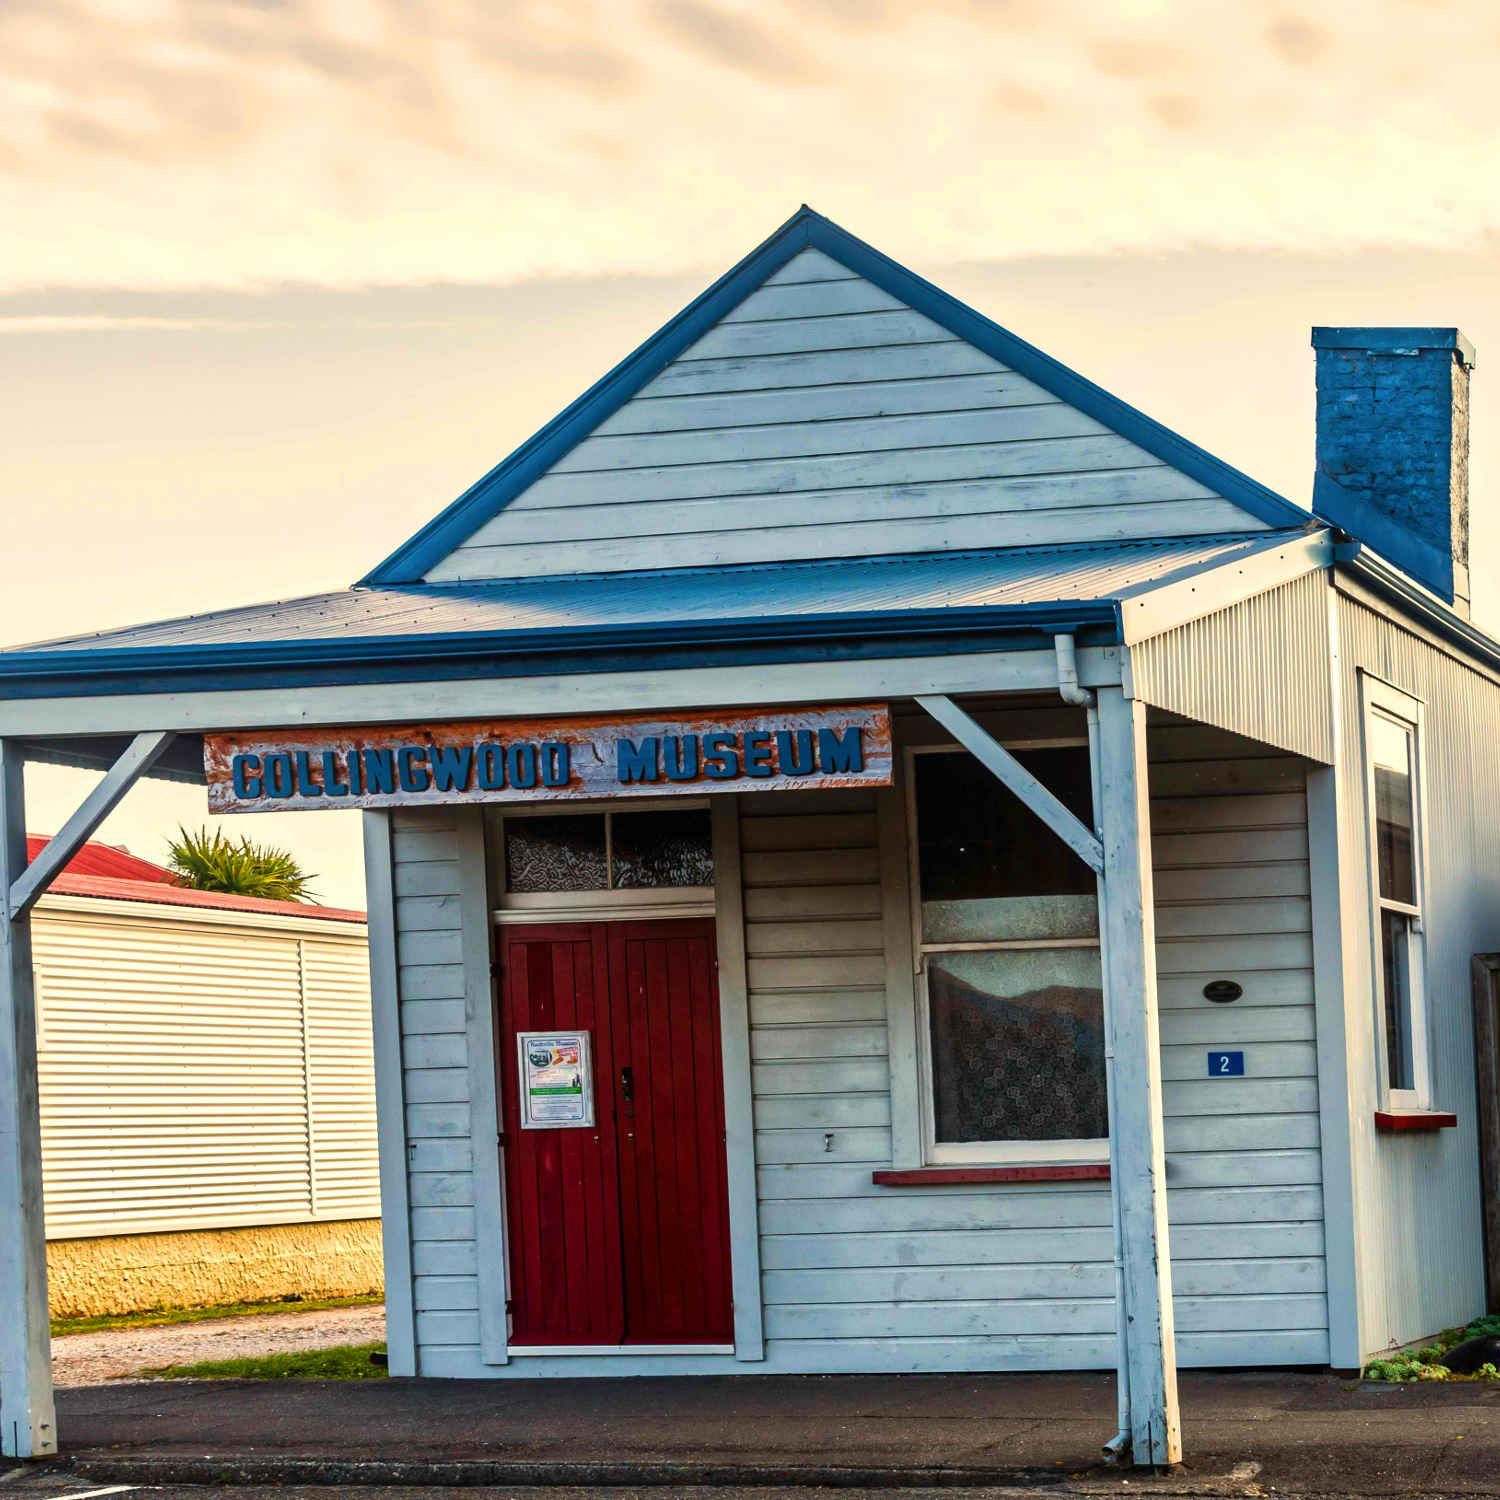 Collingwood Museum and Aorere Centre, Collingwood, New Zealand